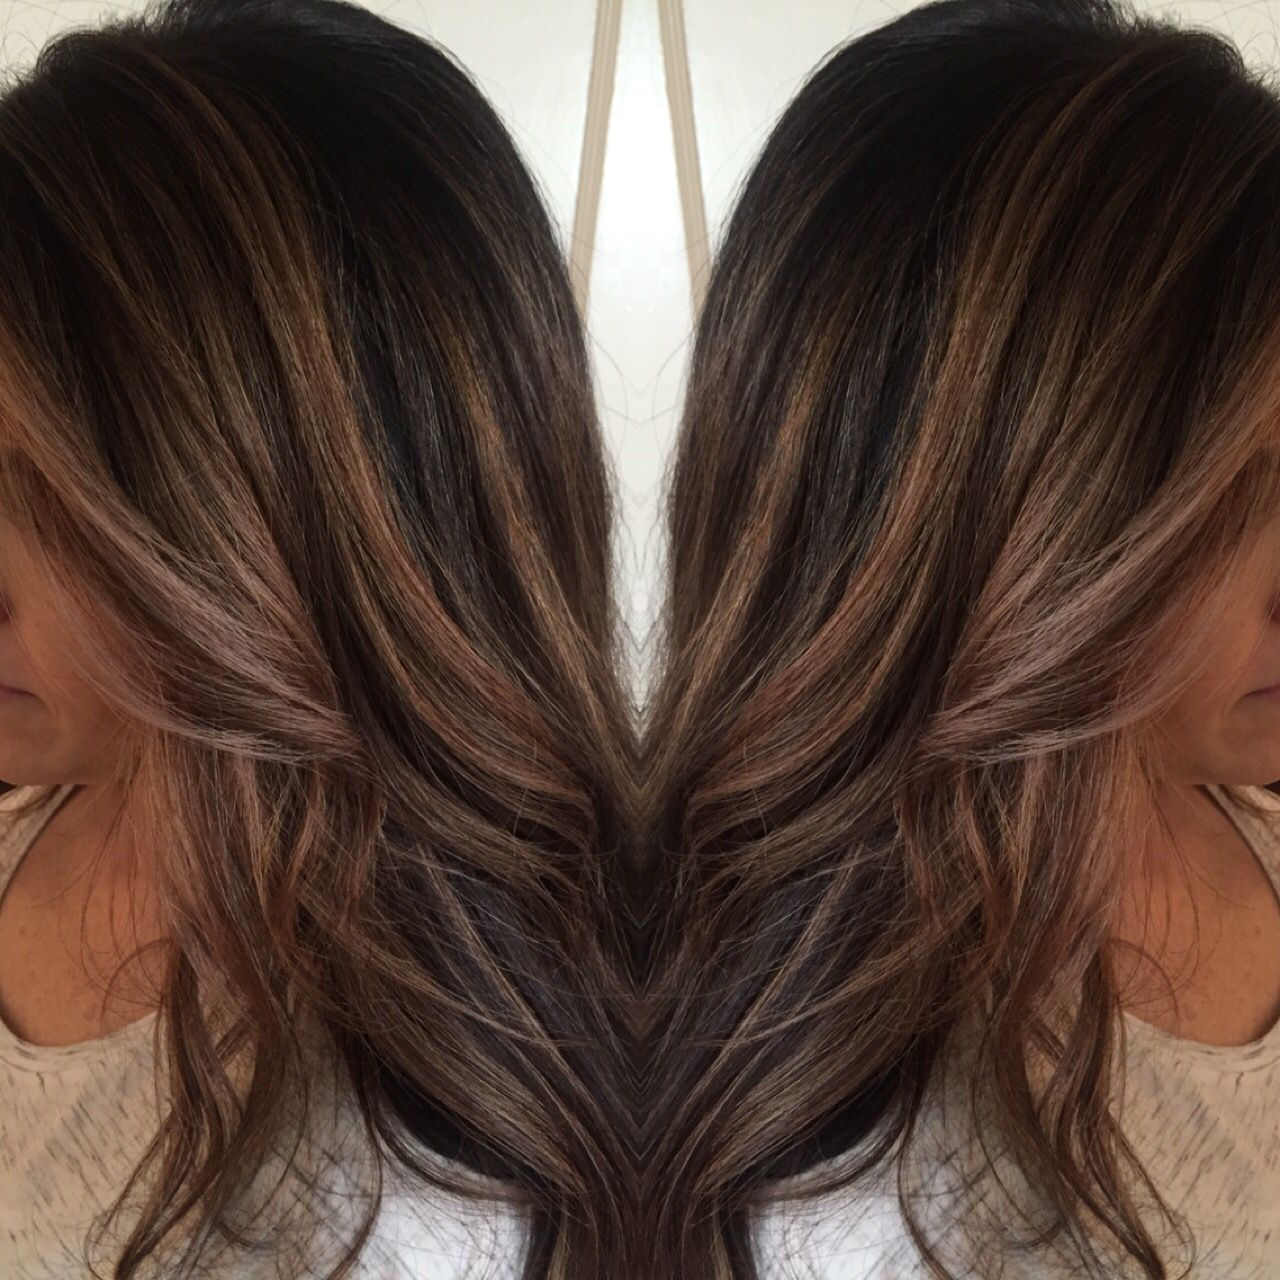 Ashy Blonde Highlights To Add Dimension For This Dark Haired Girl